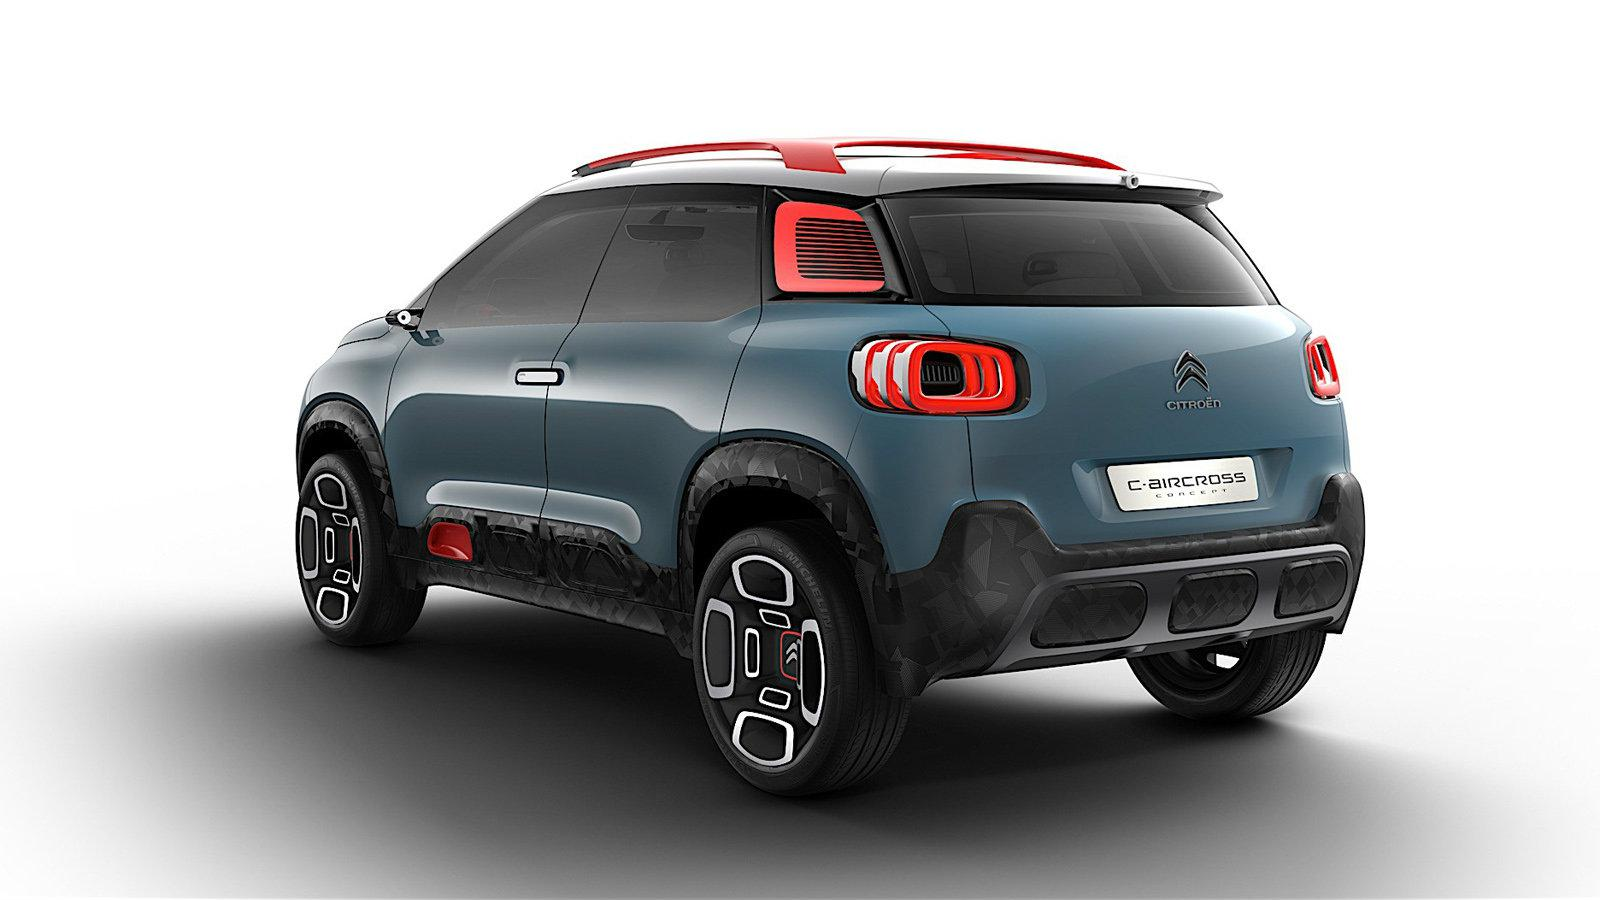 n citroen c aircross citroen c4 cactus. Black Bedroom Furniture Sets. Home Design Ideas